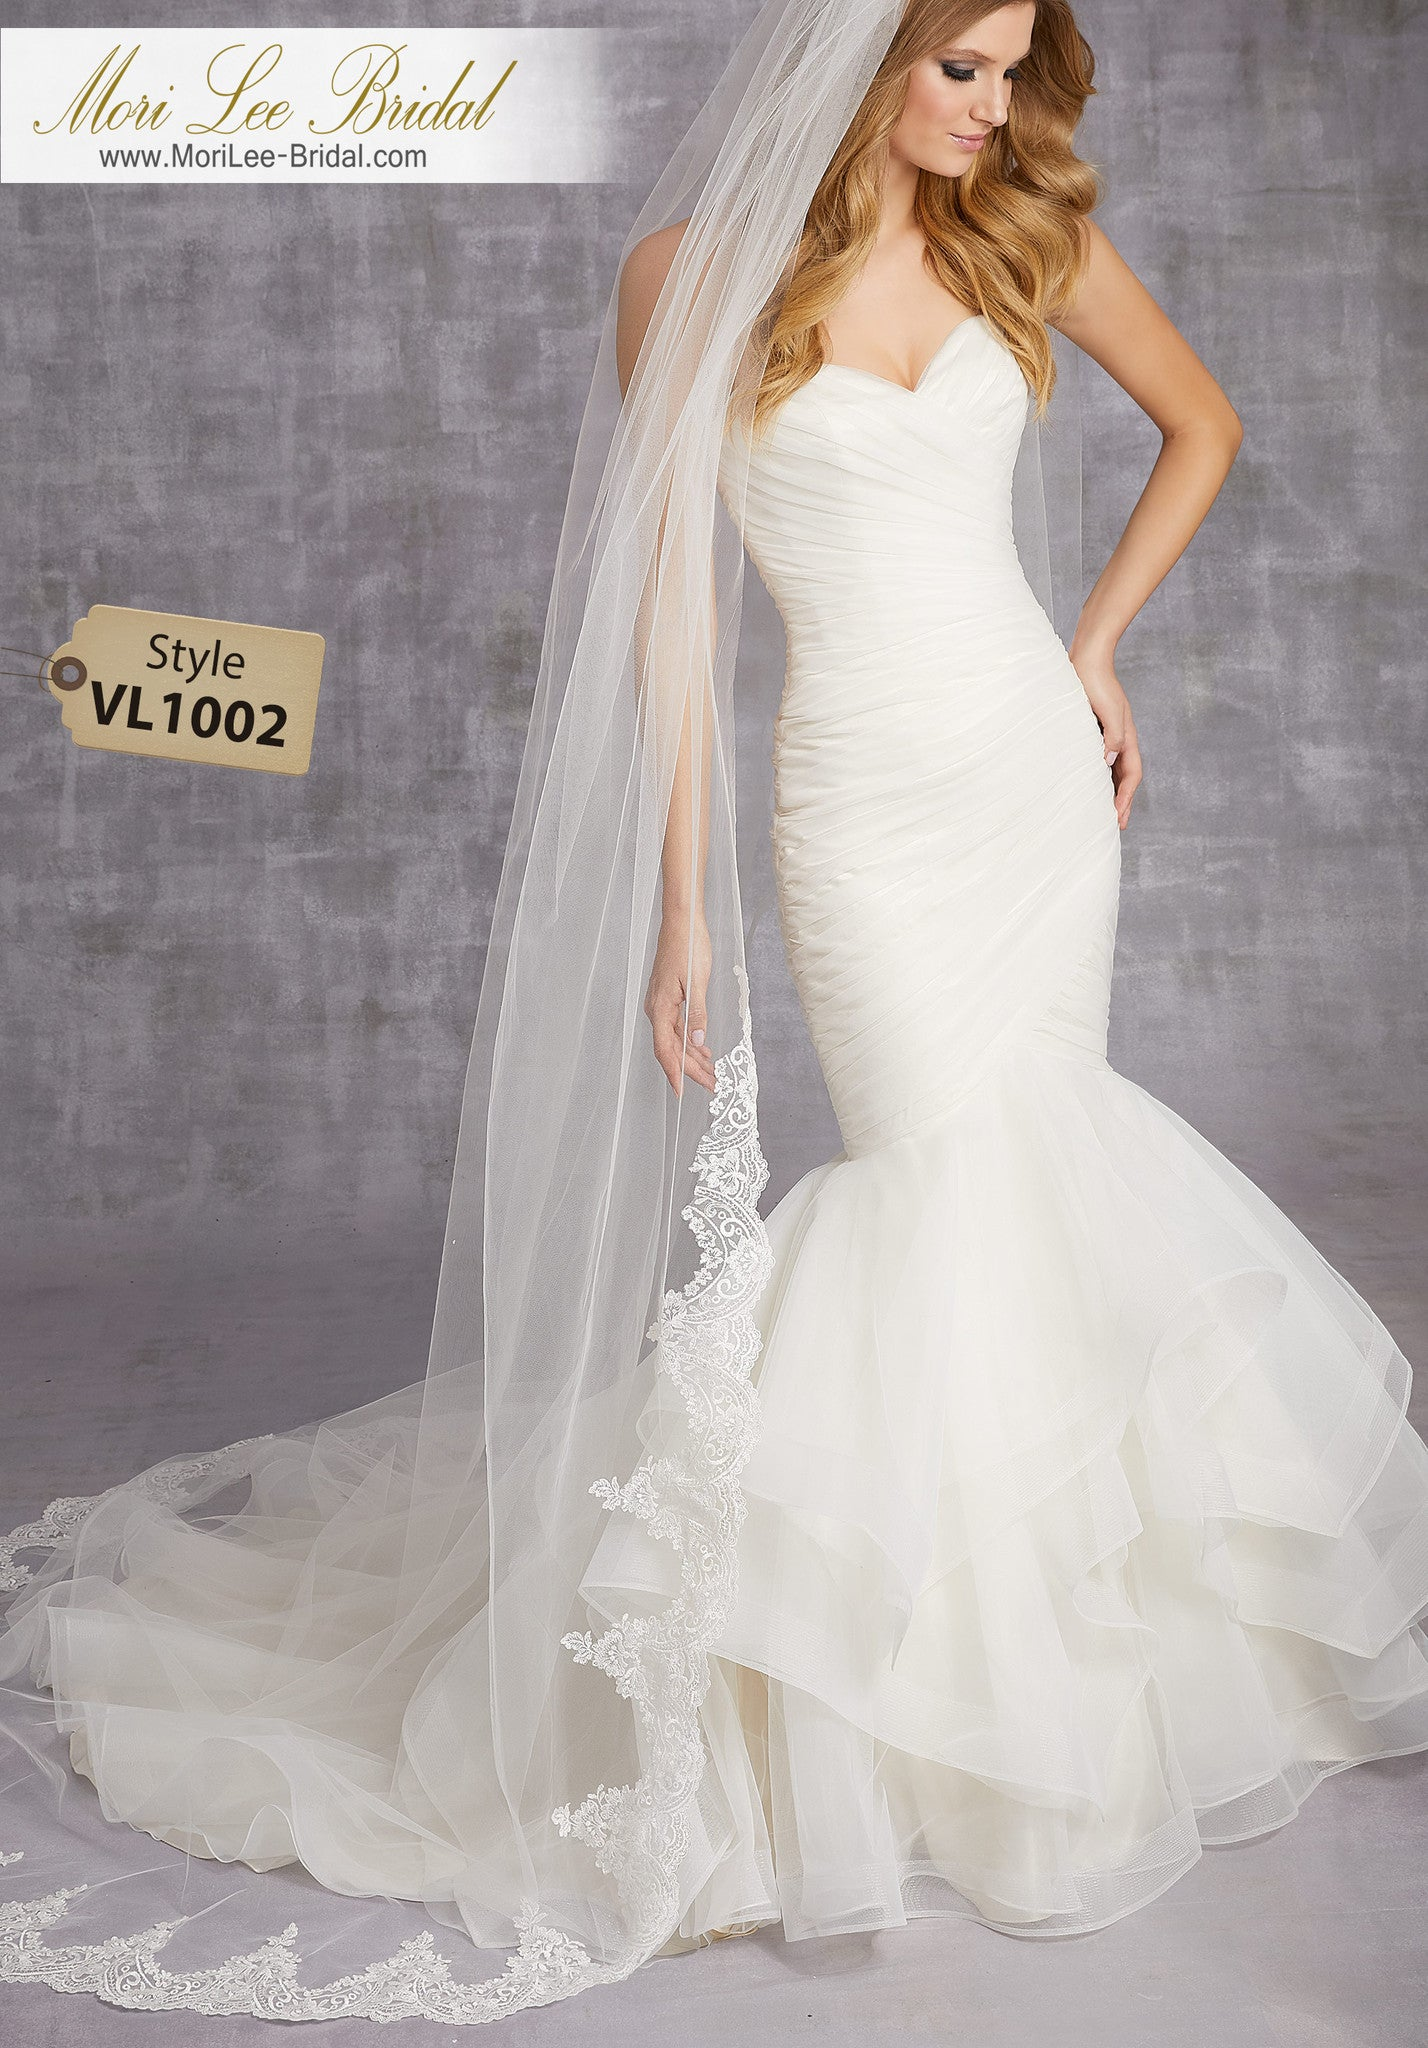 VL1002F - Mori Lee Bridal